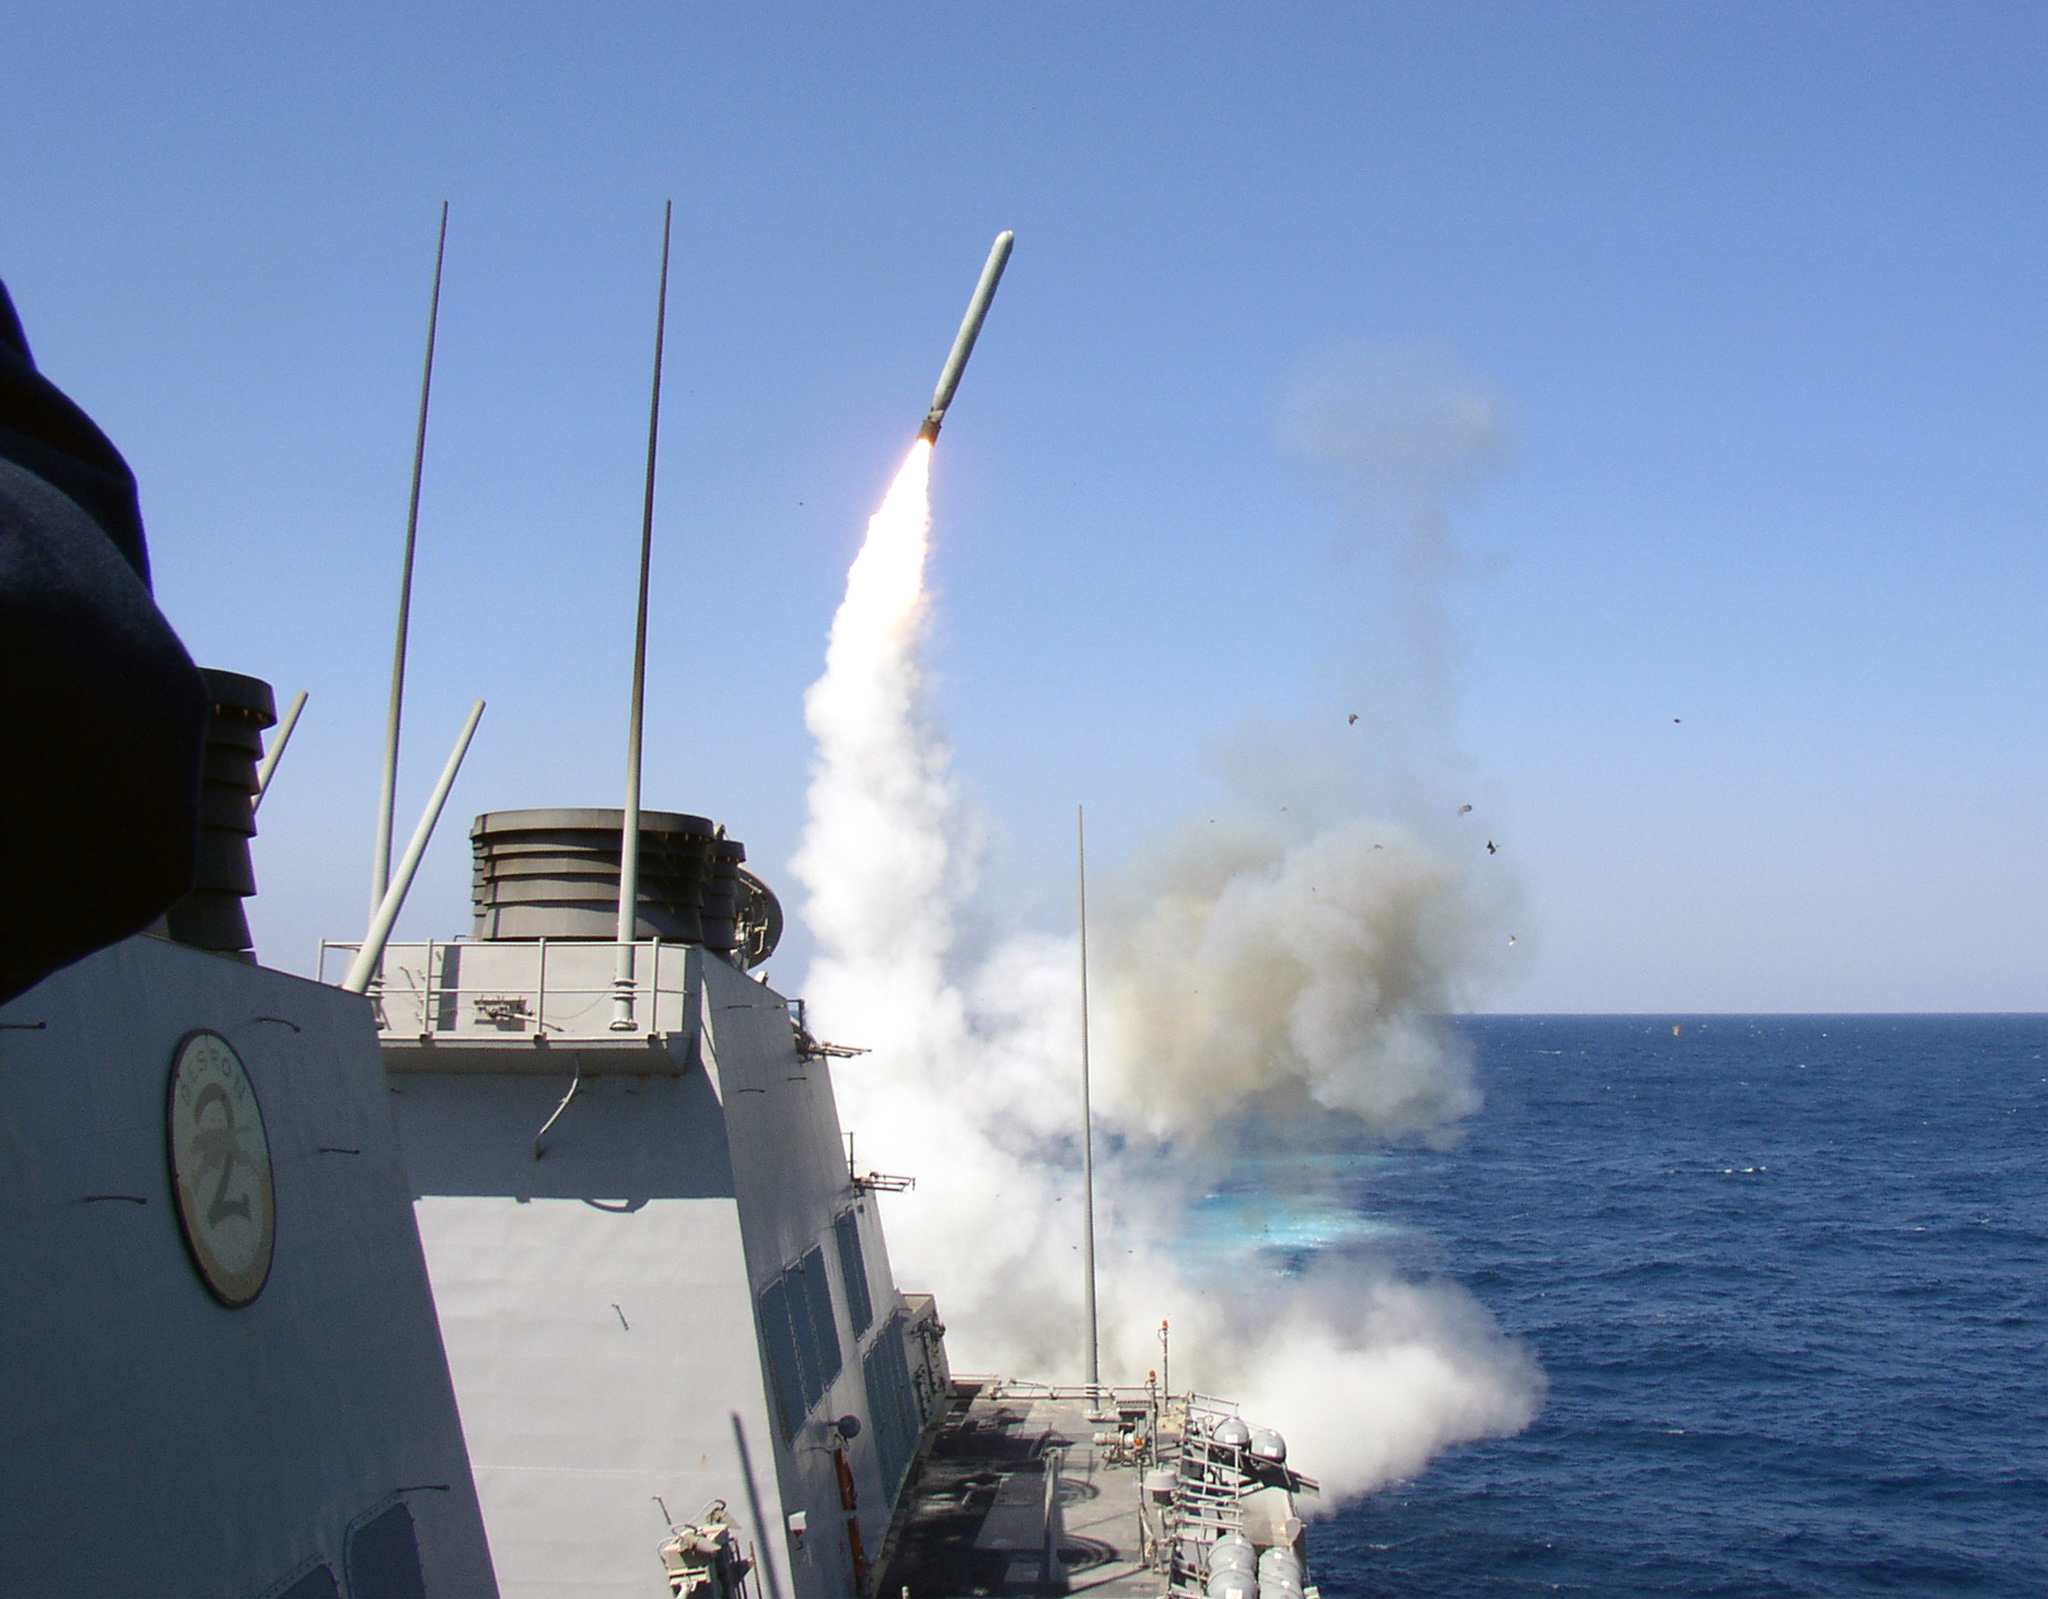 The guided missile destroyer USS Porter (DDG 78) launches a Tomahawk Land Attack Missile (TLAM) toward Iraq on March 22, 2003. Porter is deployed by the U.S. in support of Operation Iraqi Freedom. Large explosions rocked Baghdad late on March 25, briefly halting Iraqi television broadcasts as the first blast struck the capital. REUTERS/Lt. Christopher Senenko/U.S. Navy NVNS/GN - RTRKUDI